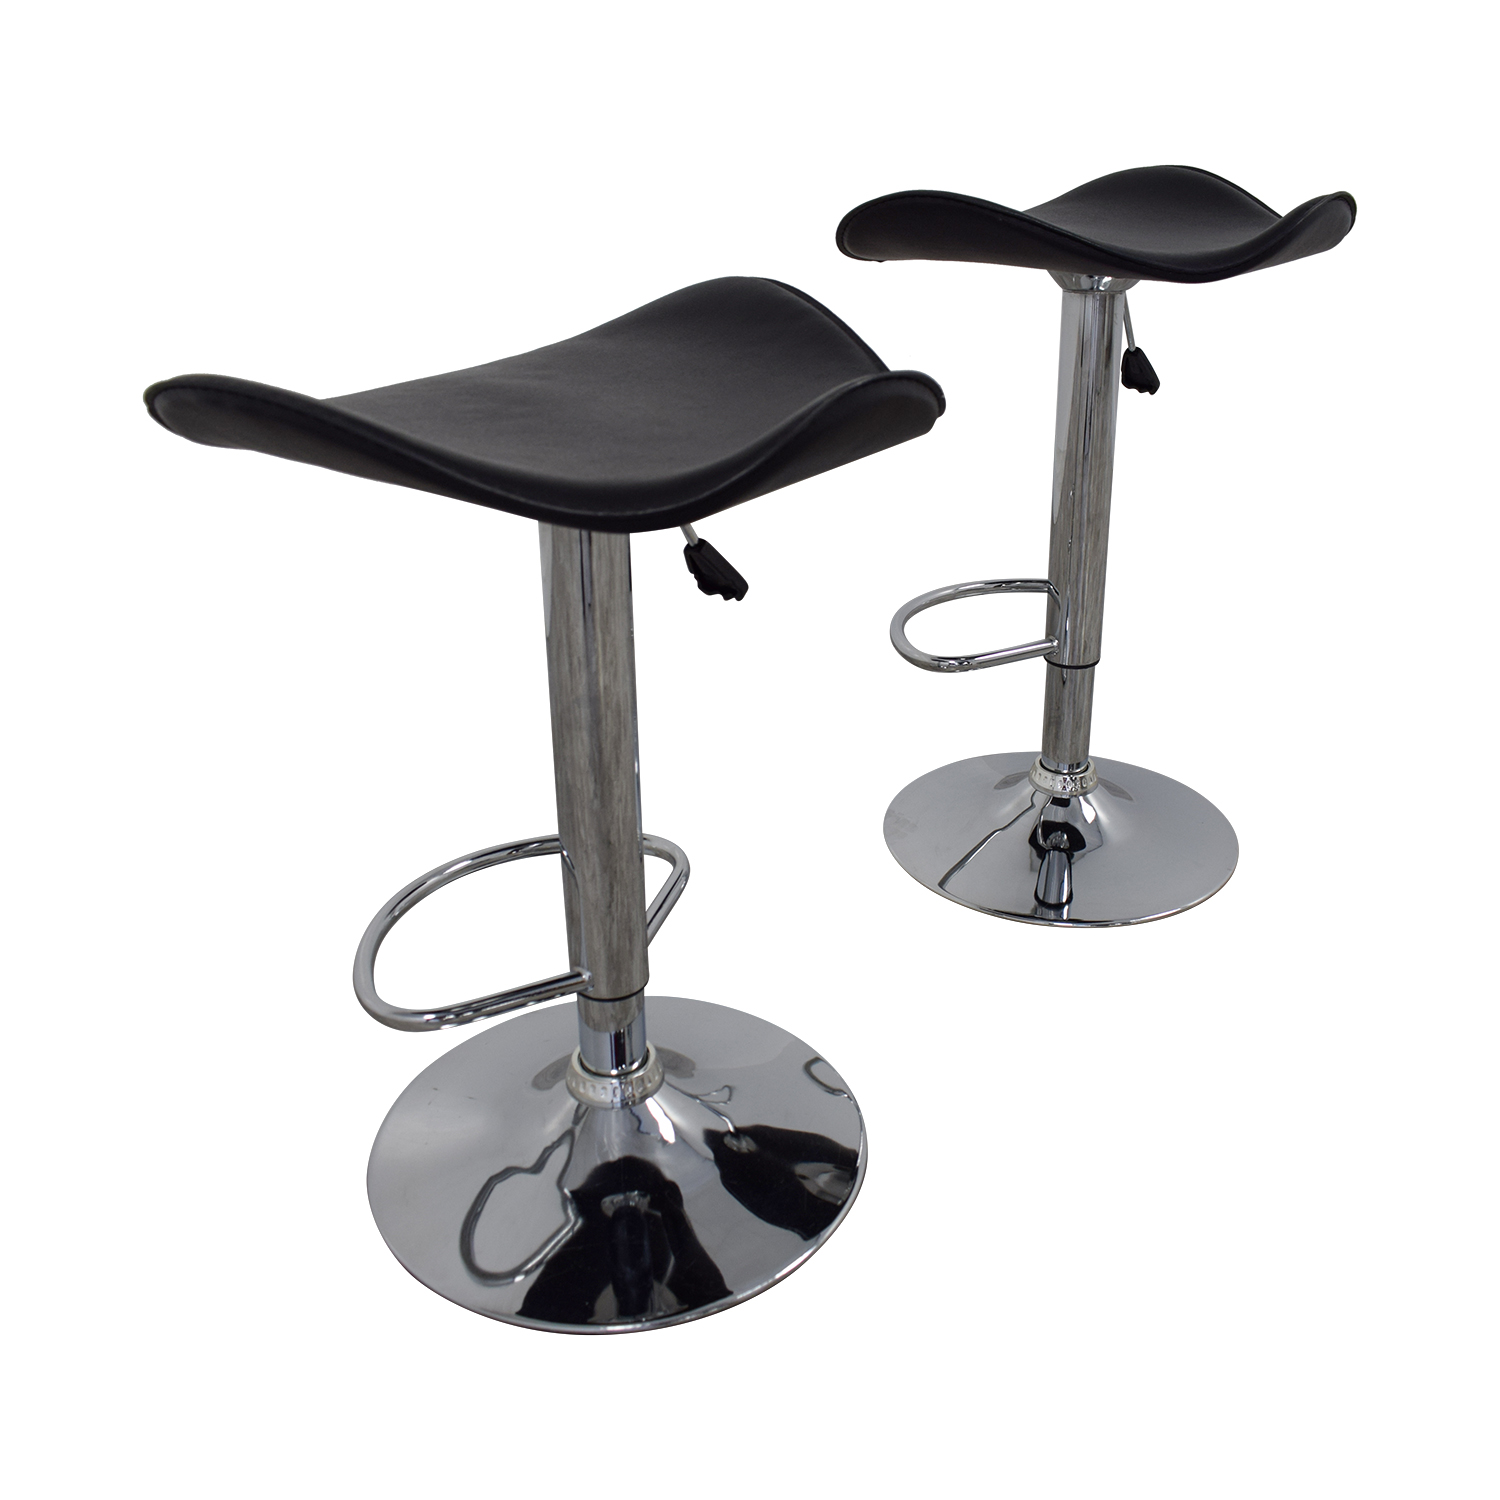 Incredible 71 Off Black Leather And Chrome Adjustable Bar Stools Chairs Andrewgaddart Wooden Chair Designs For Living Room Andrewgaddartcom